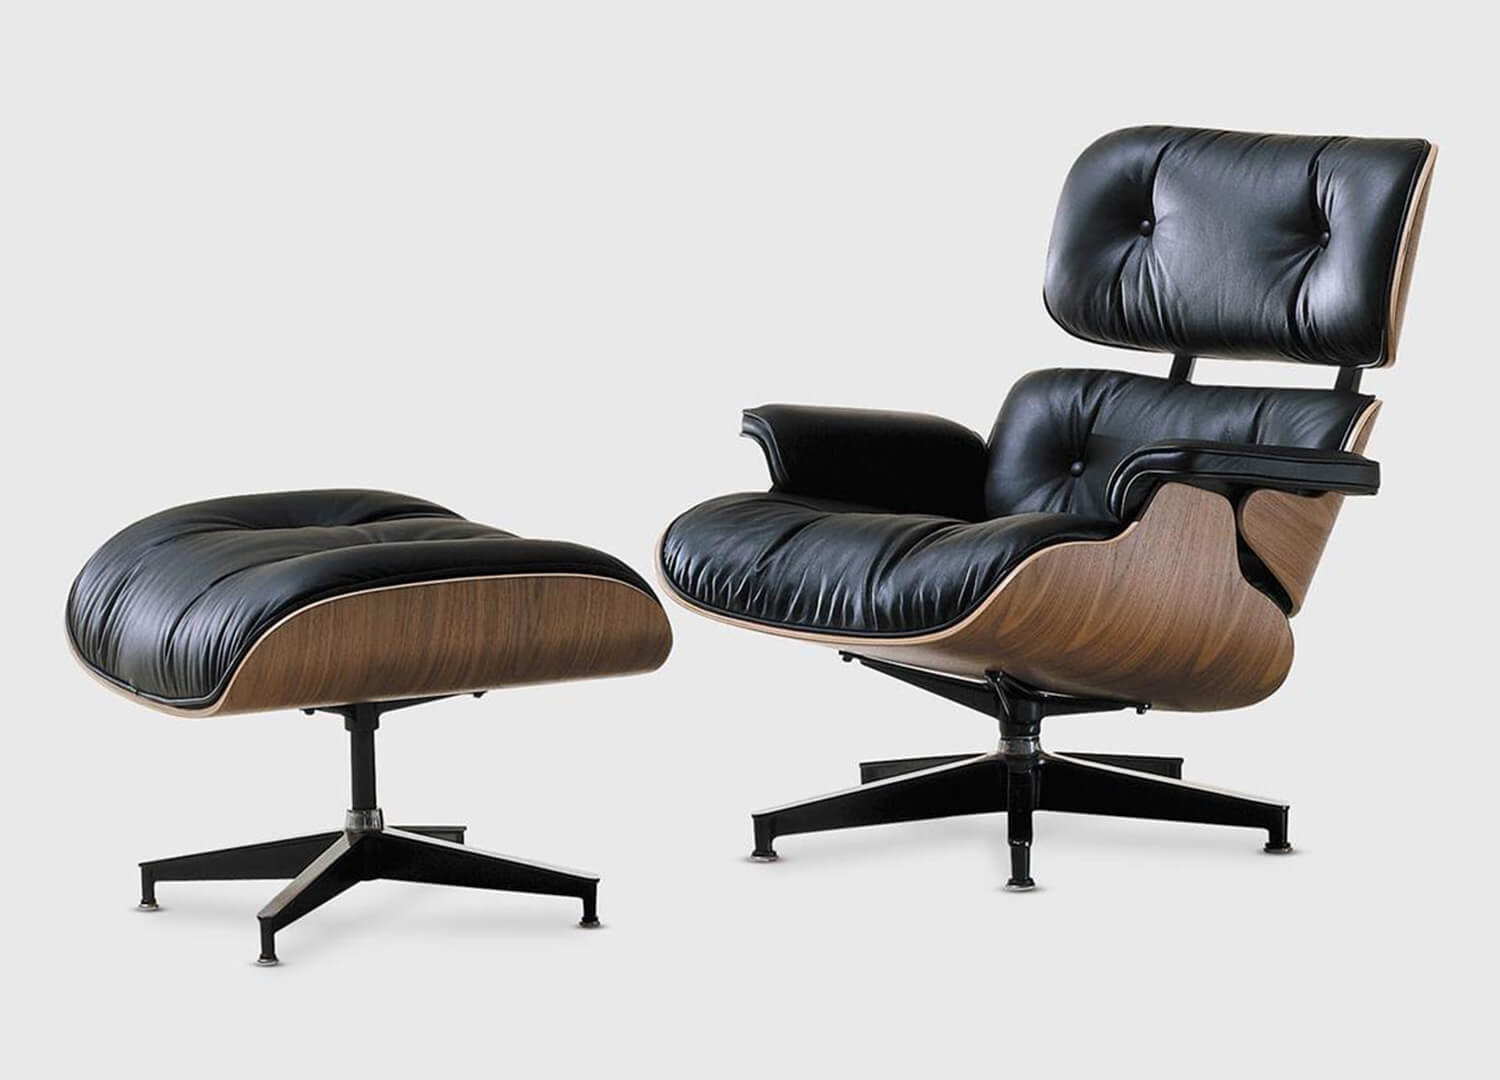 Eames lounge chair est living products - Eames lounge chair prix ...